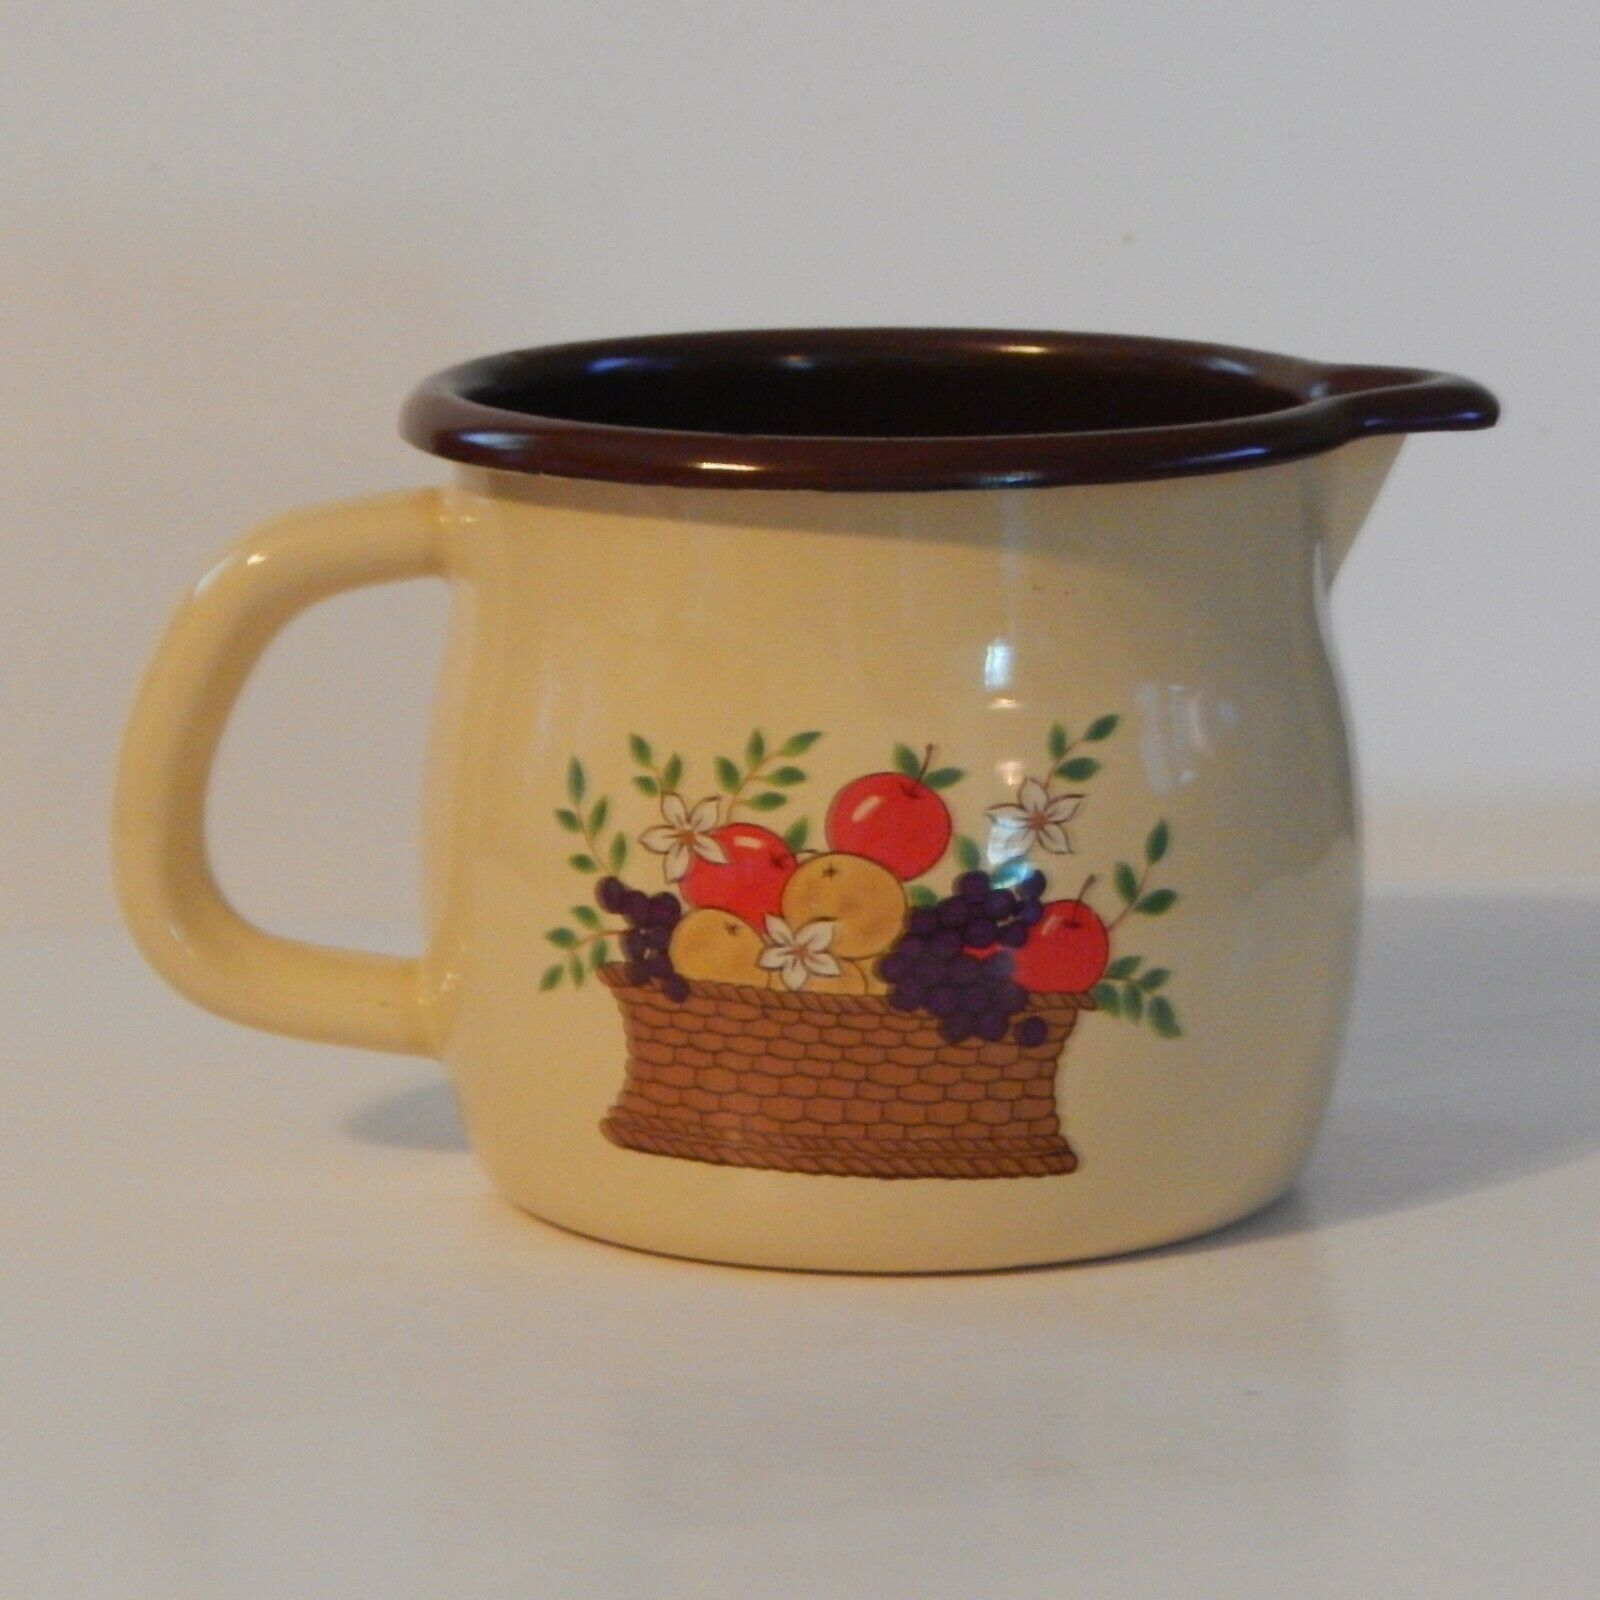 Primary image for Vintage Brown and Tan FTD Enamelware Pitcher Planter with Fruits in Basket Desig